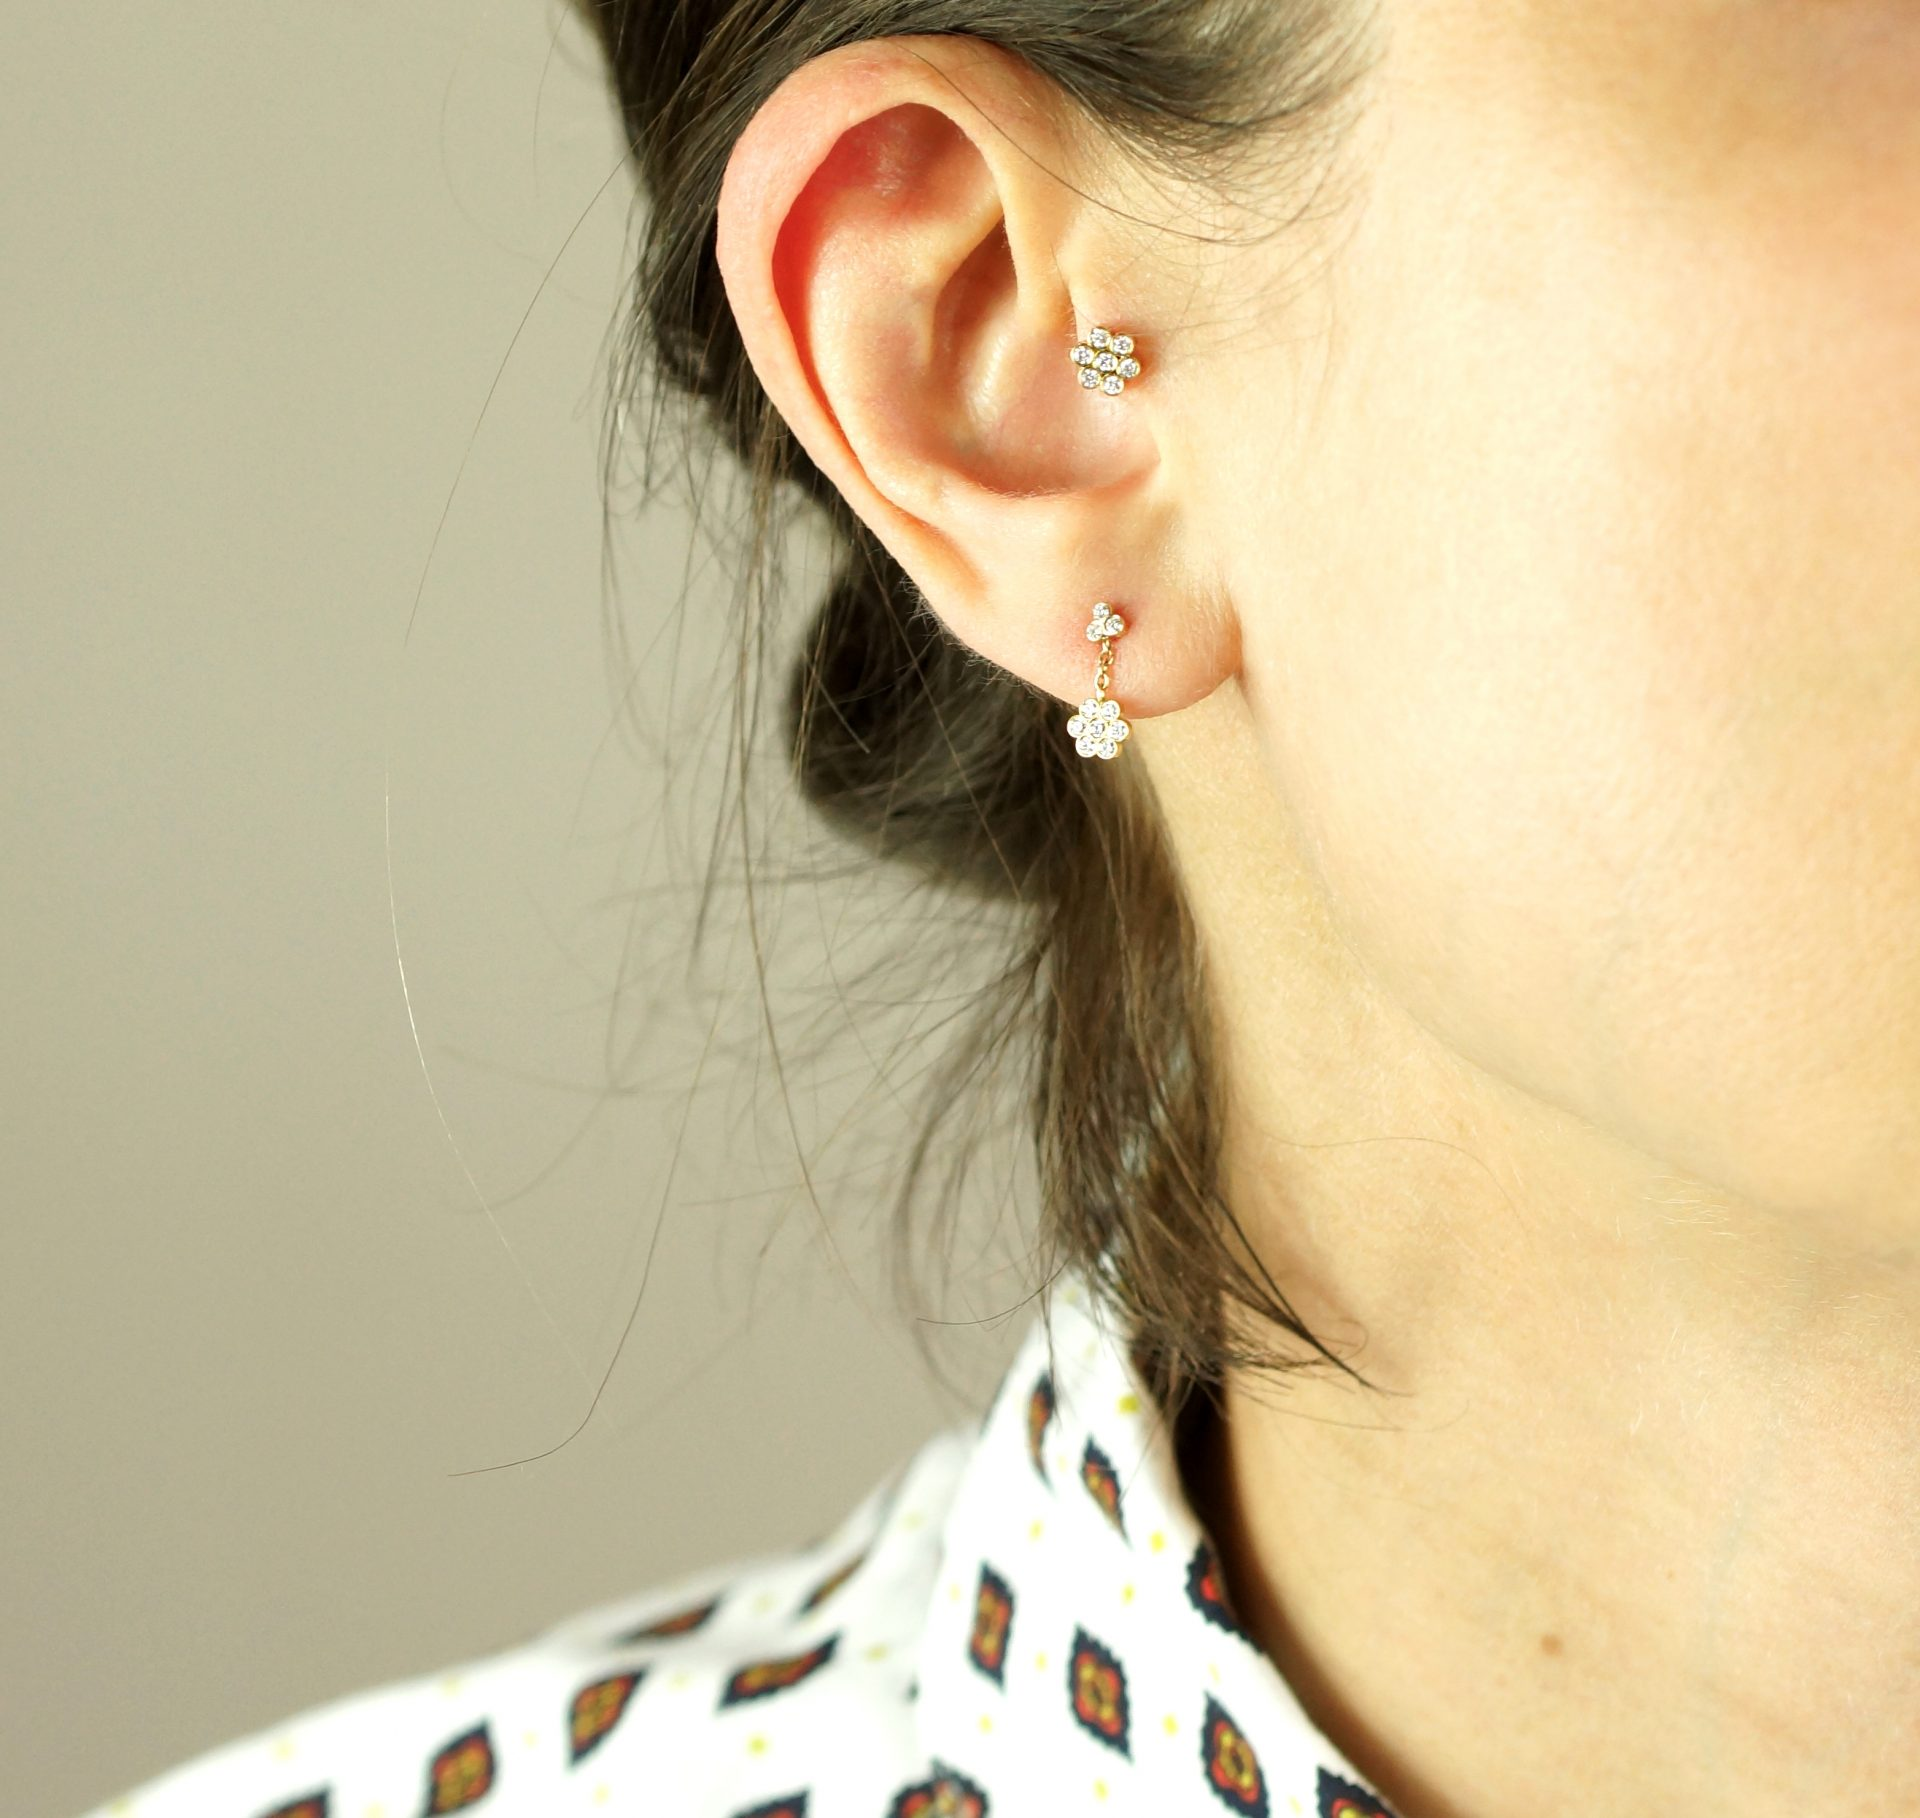 From dainty studs to golden hoops, Lena Cohen Fine Jewellery is a range of luxury piercing earrings to suit every ear design